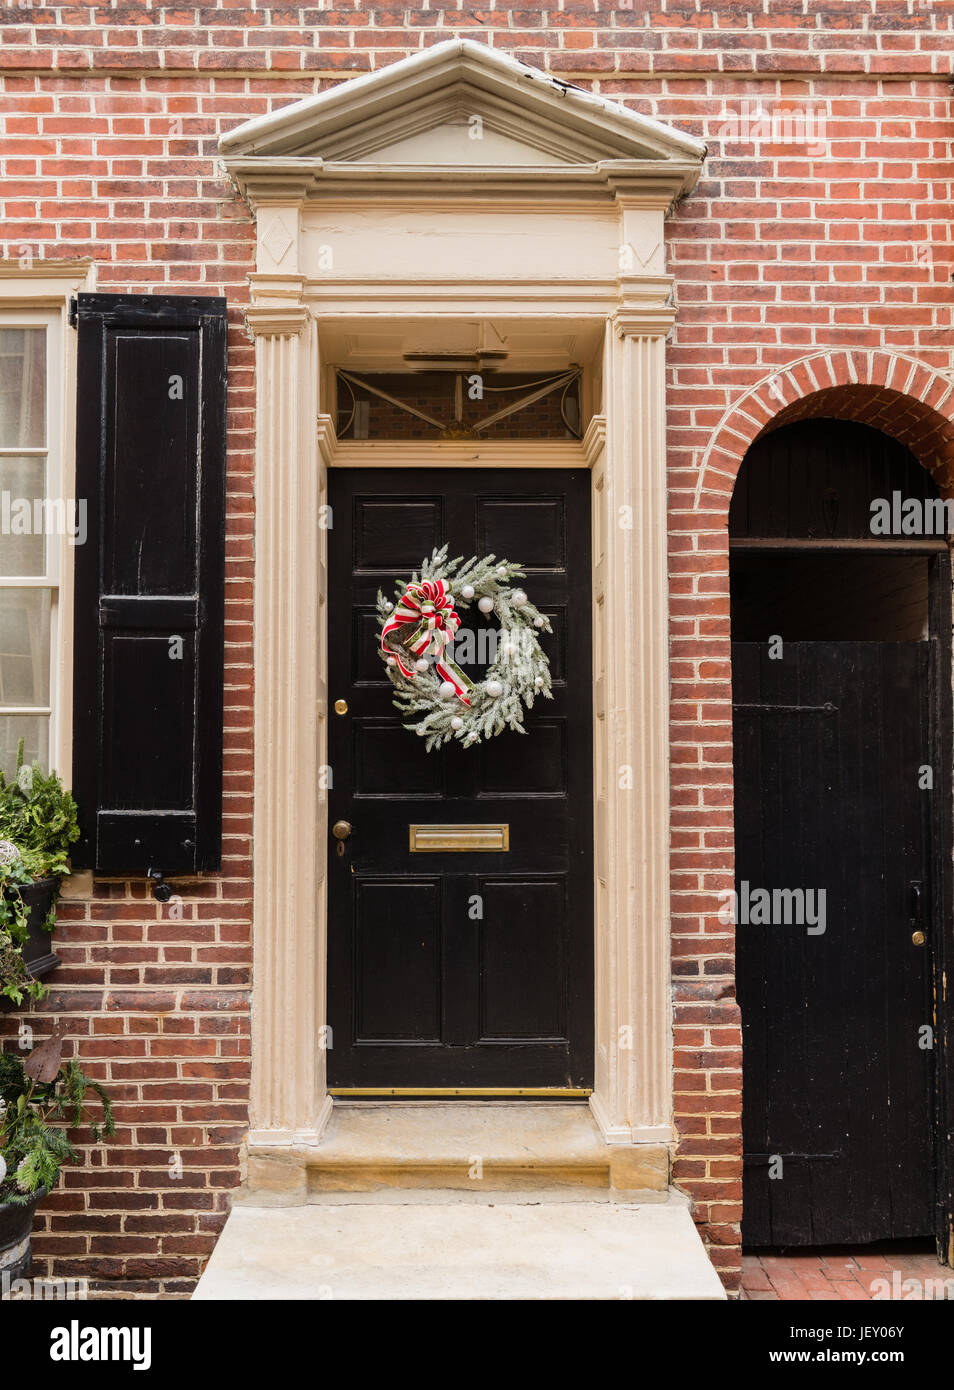 Colonial red doorway in historic Elfreth's Alley in Philadelphia with pediment and  christmas wreath - Stock Image